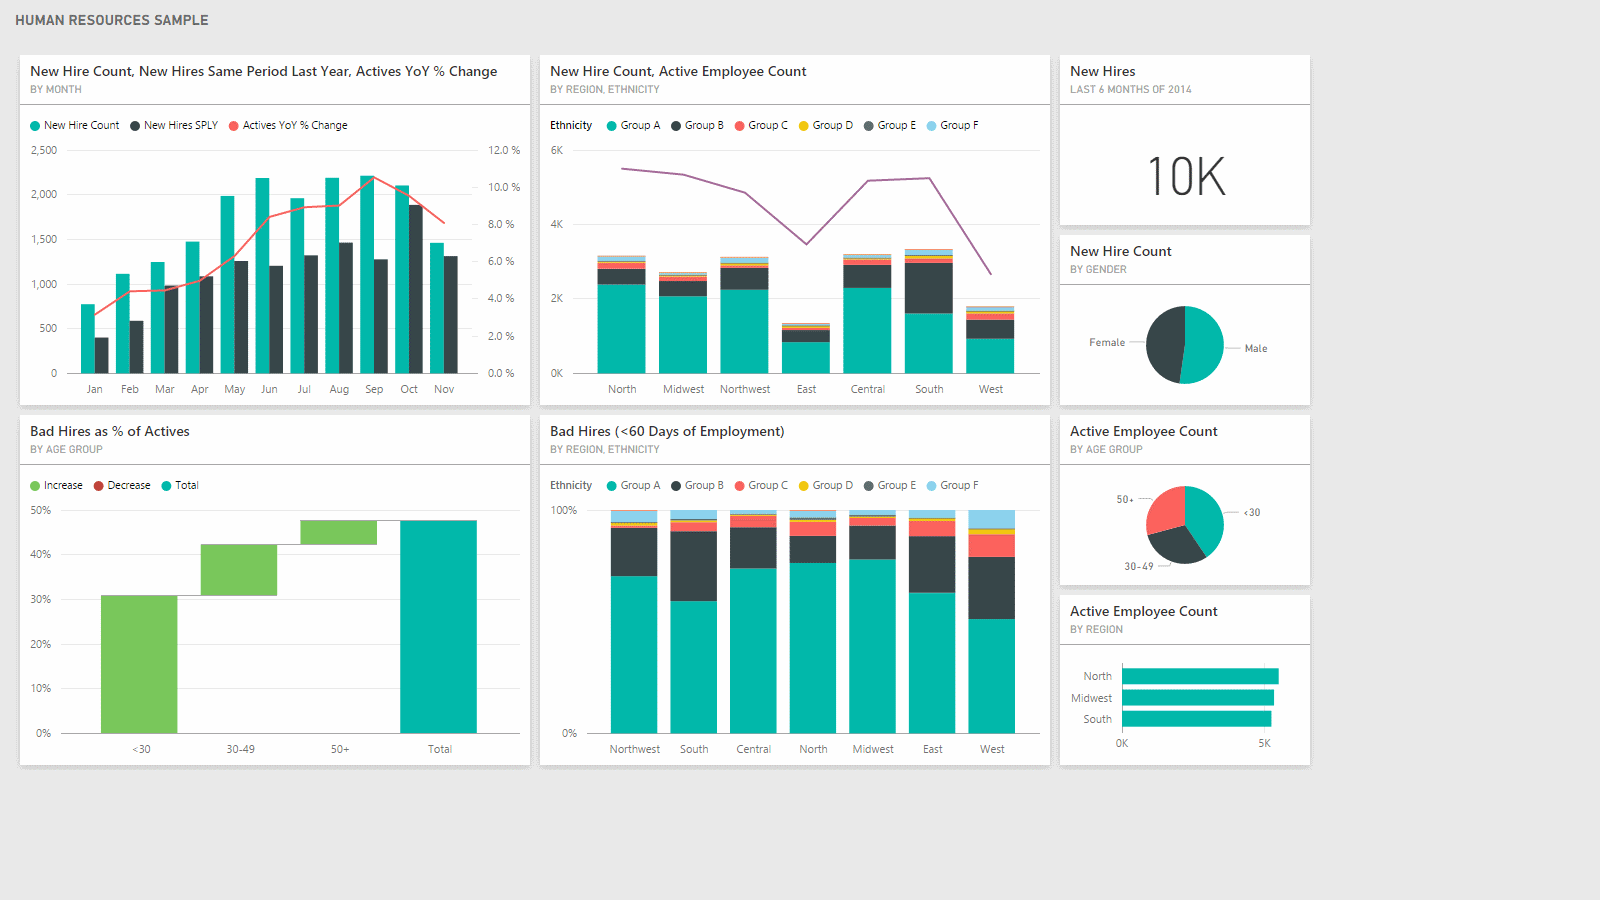 Dashboard: HUMAN RESOURCES